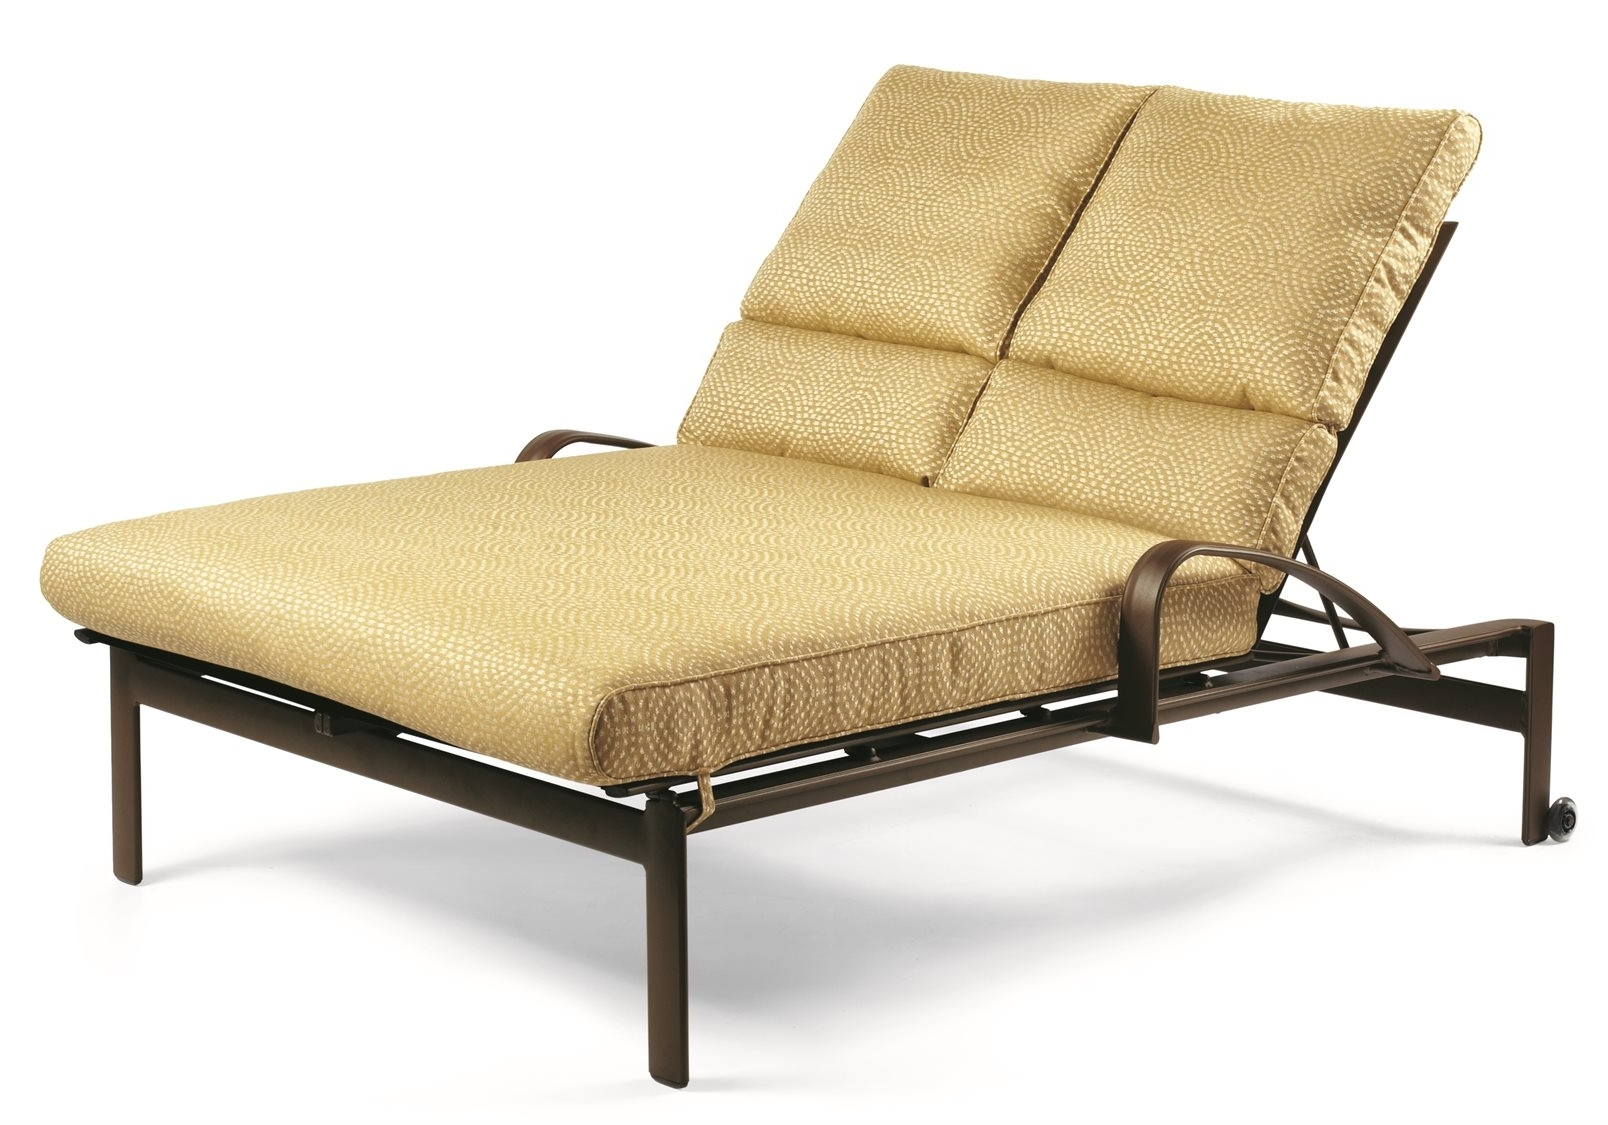 Double Chaise Lounge Cushion With Regard To Trendy Garden Bench Cushion Replacement Sun Lounger Cushions Outdoor (View 5 of 15)